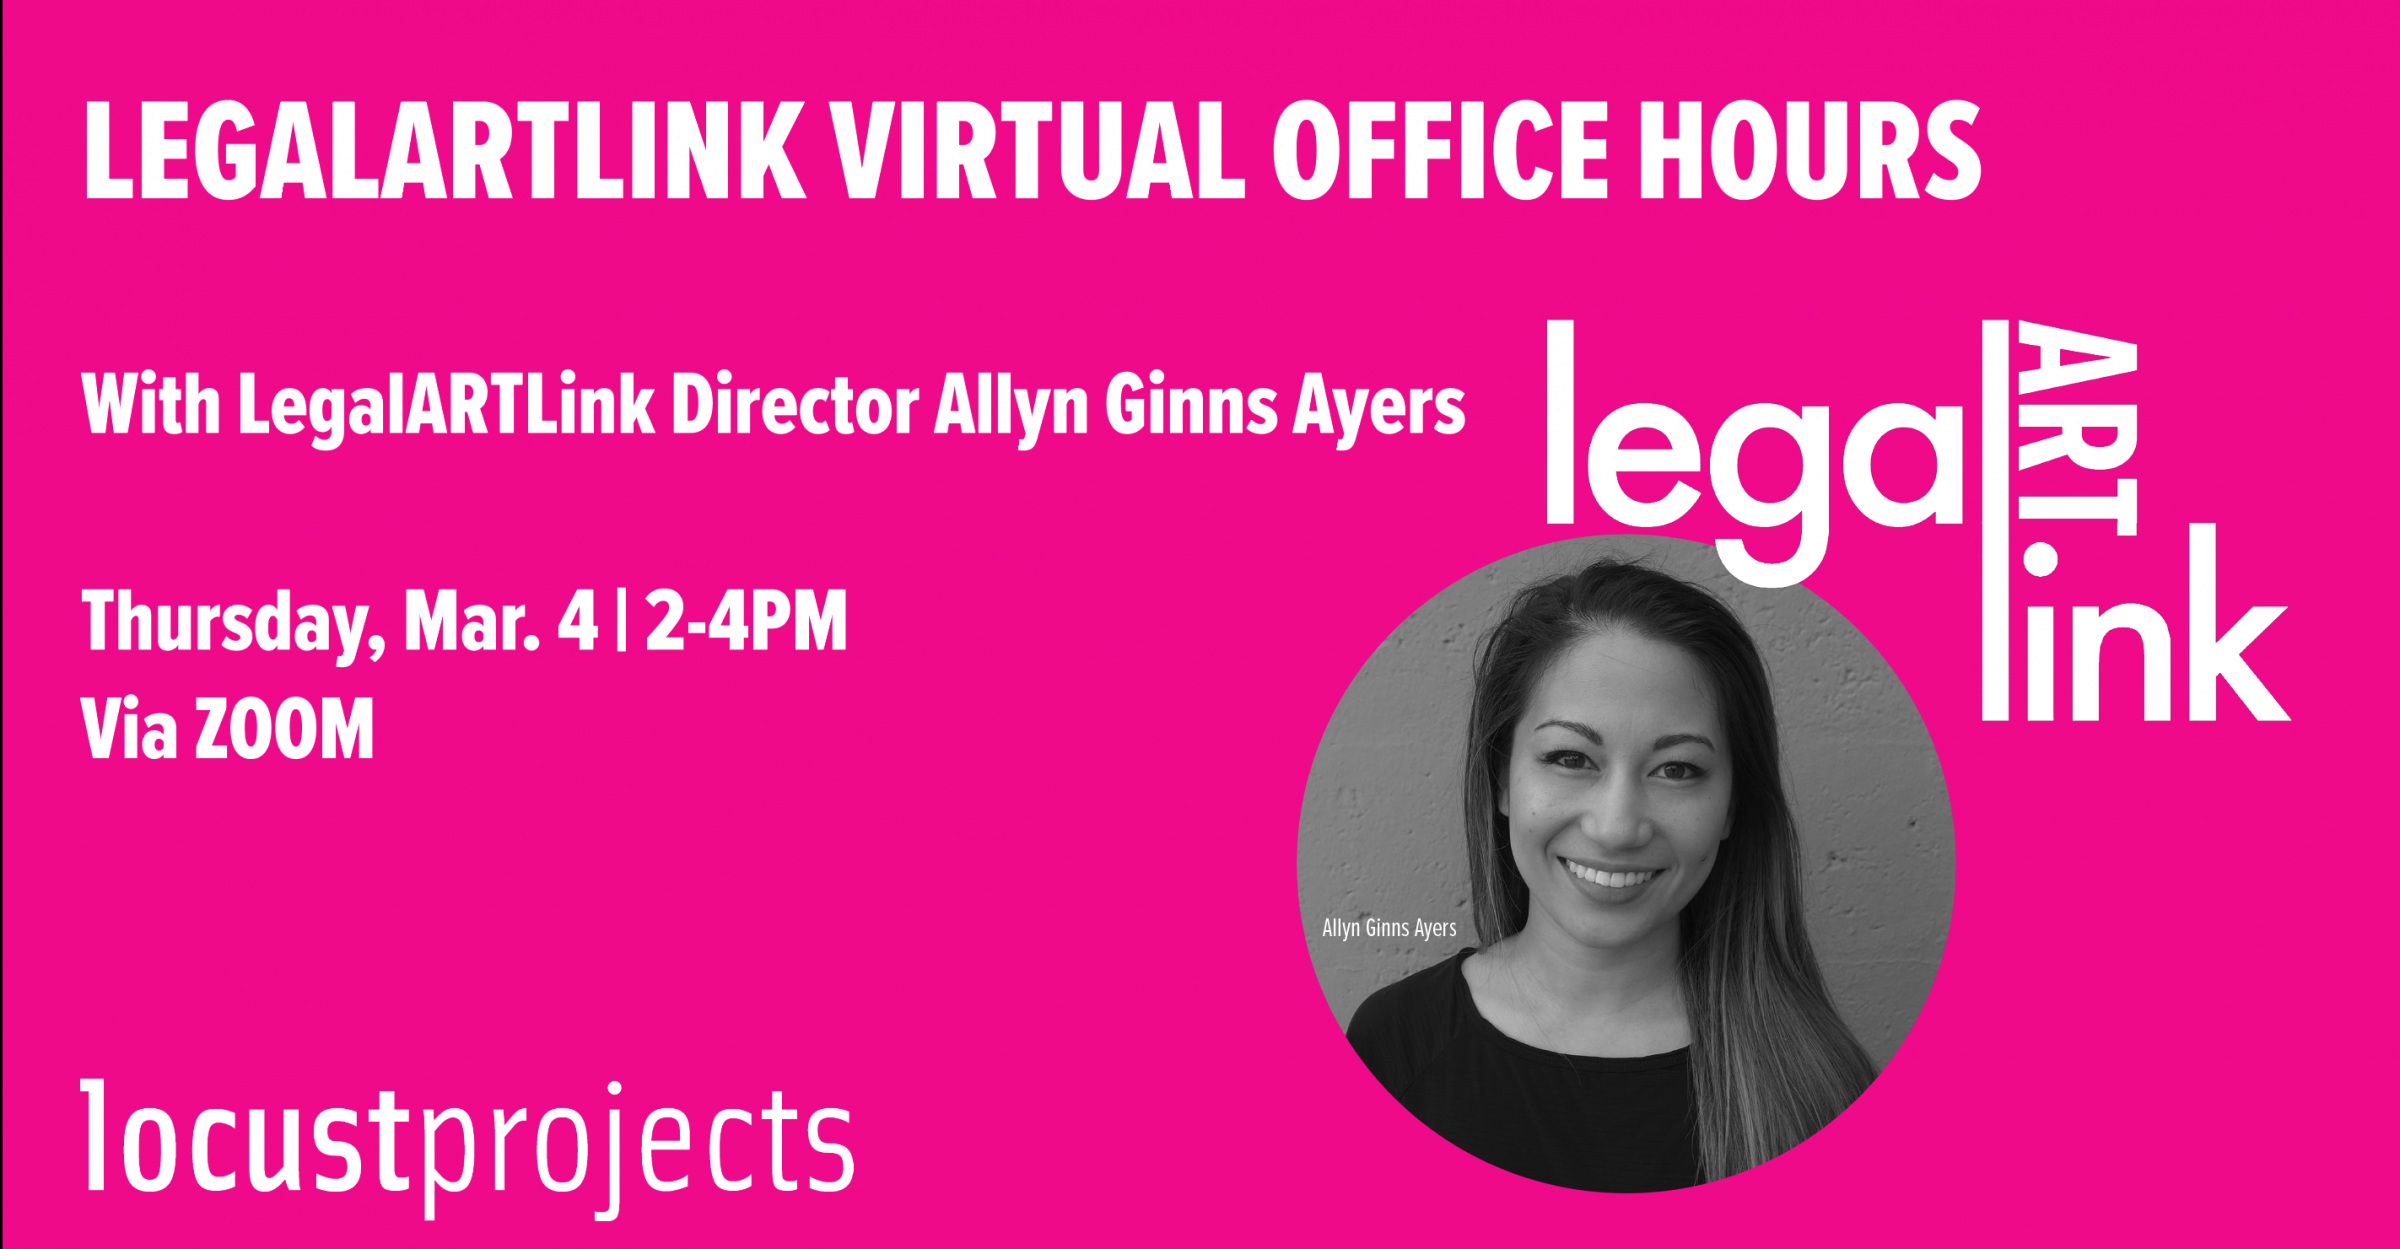 LegalARTLink Virtual Office Hours